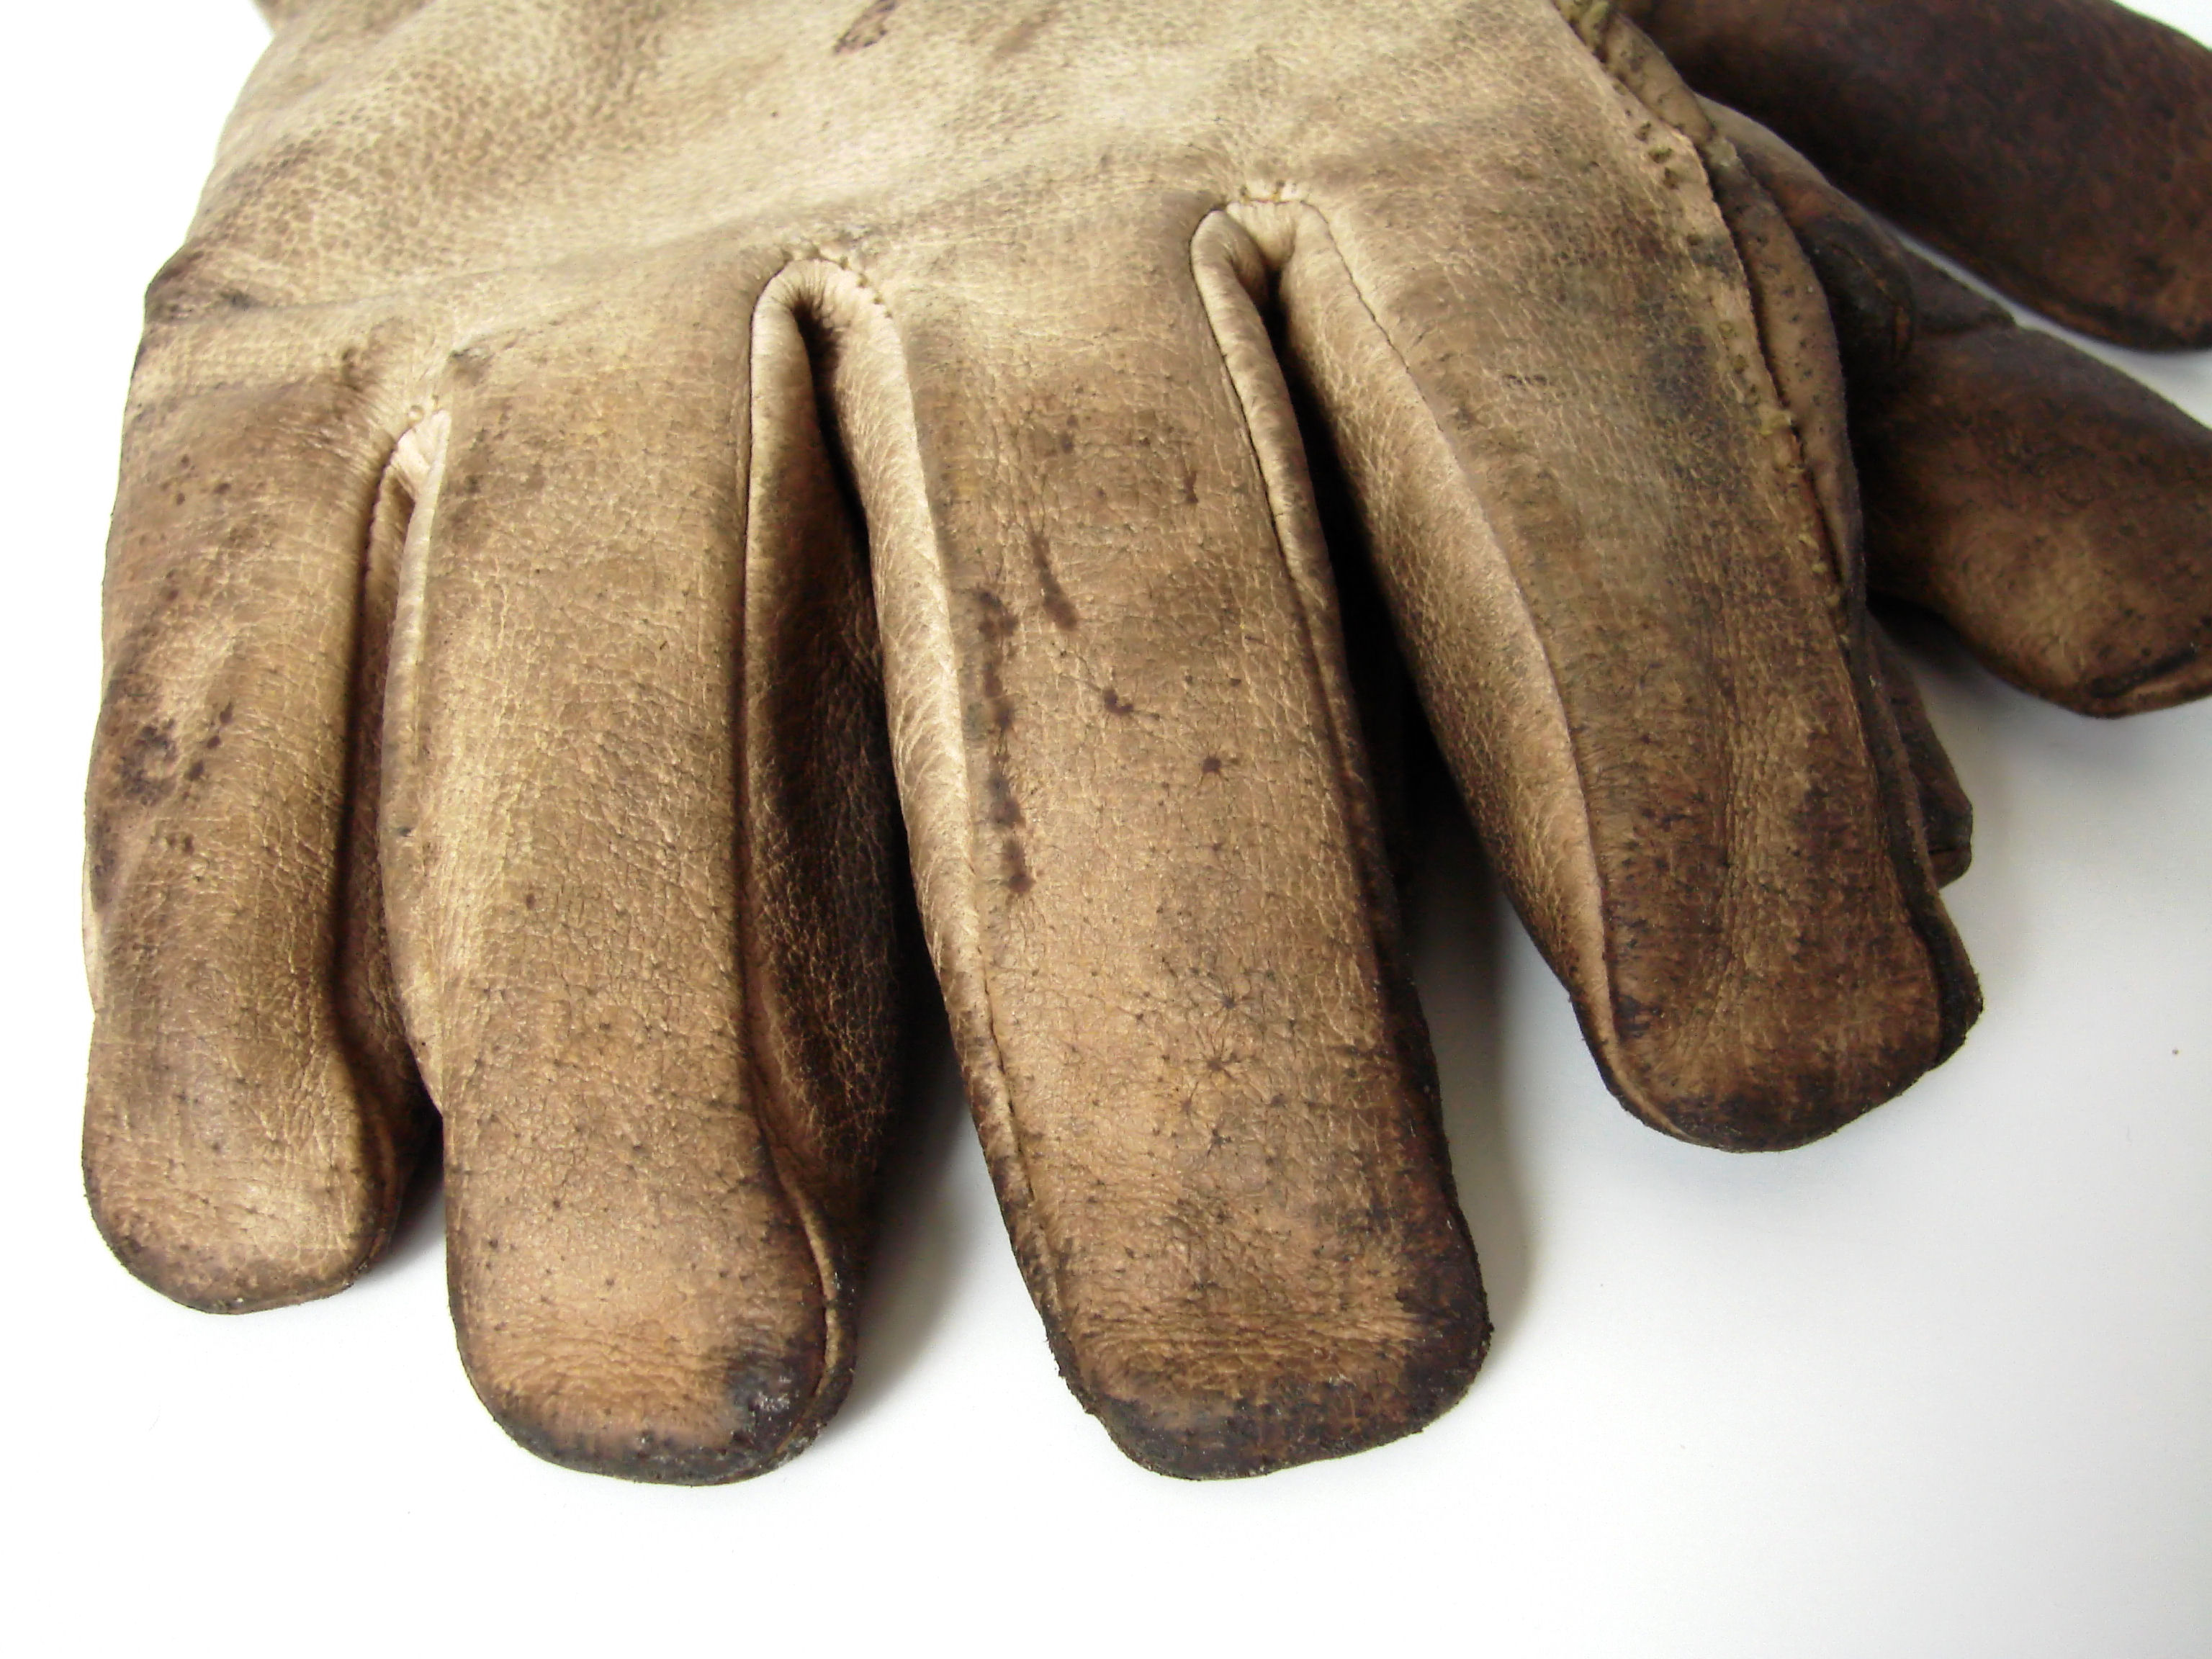 work-gloves-1183262